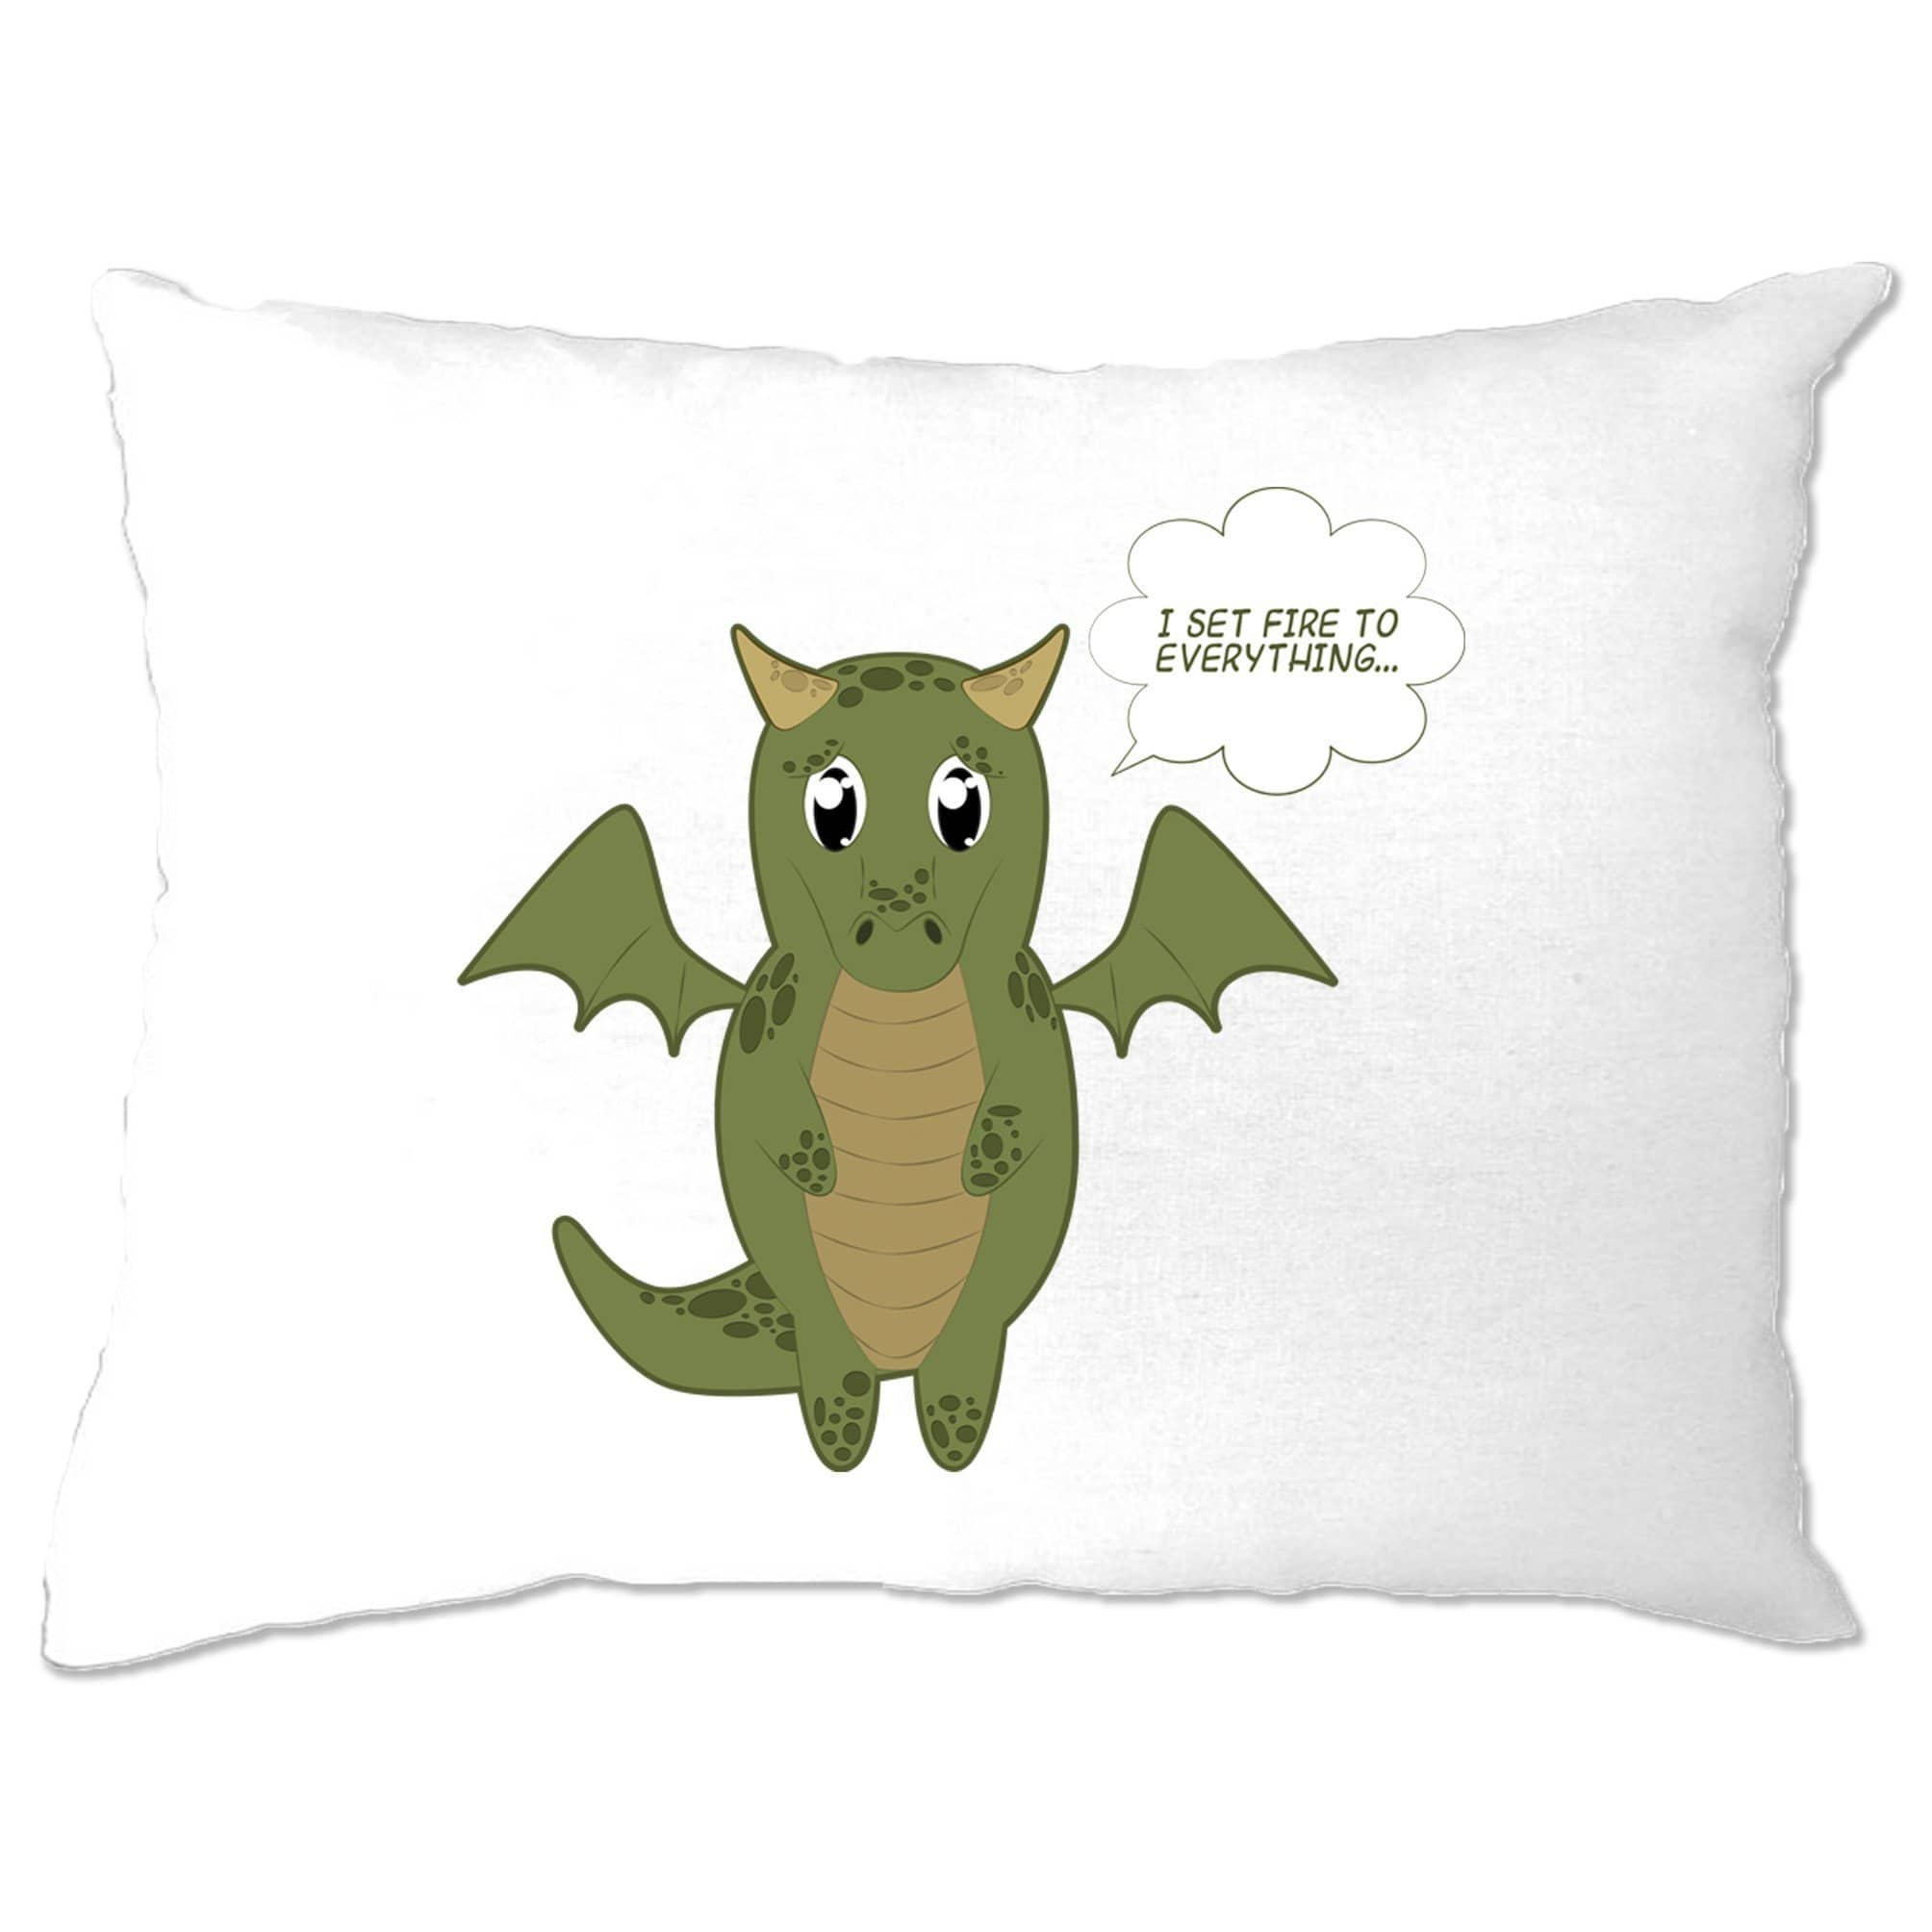 Cute Dragon Pillow Case I Set Fire To Everything Joke